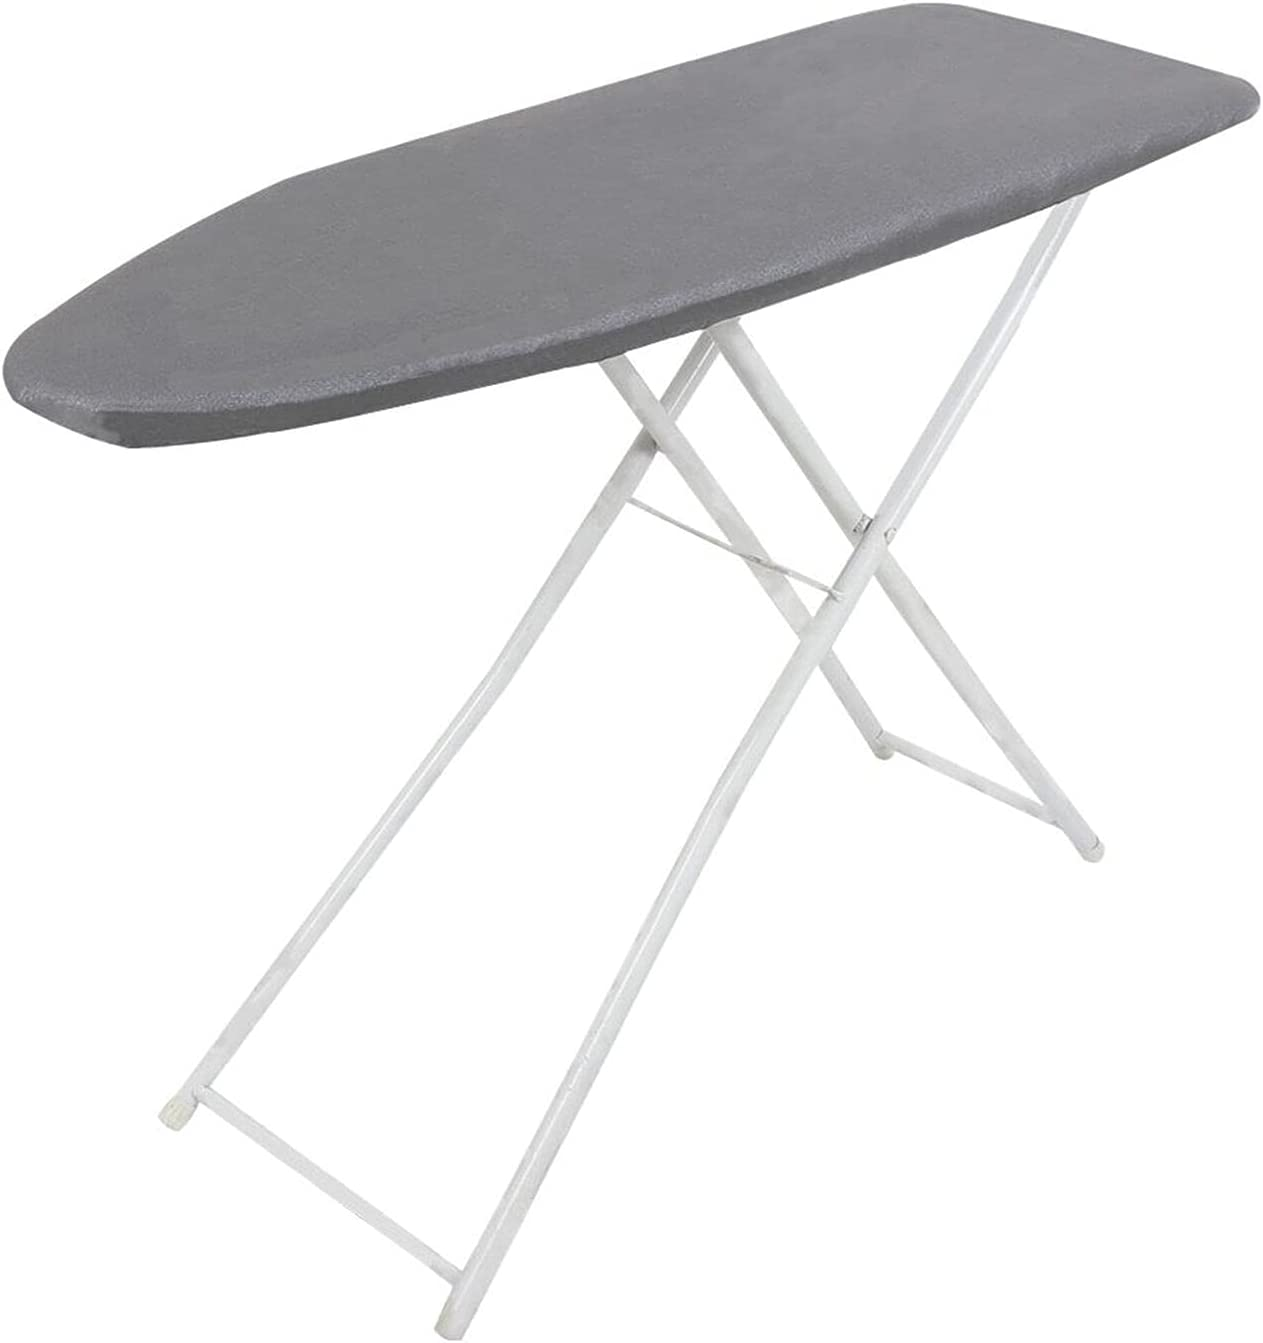 Ironing Board Cover,3 Layers Thick Padding Ironing Board Covers,Resist Scorching and Staining Iron Board Cover,Ironing Board Replacement Cover with Elastic Edge,Pads Fit Large and Standard Boards